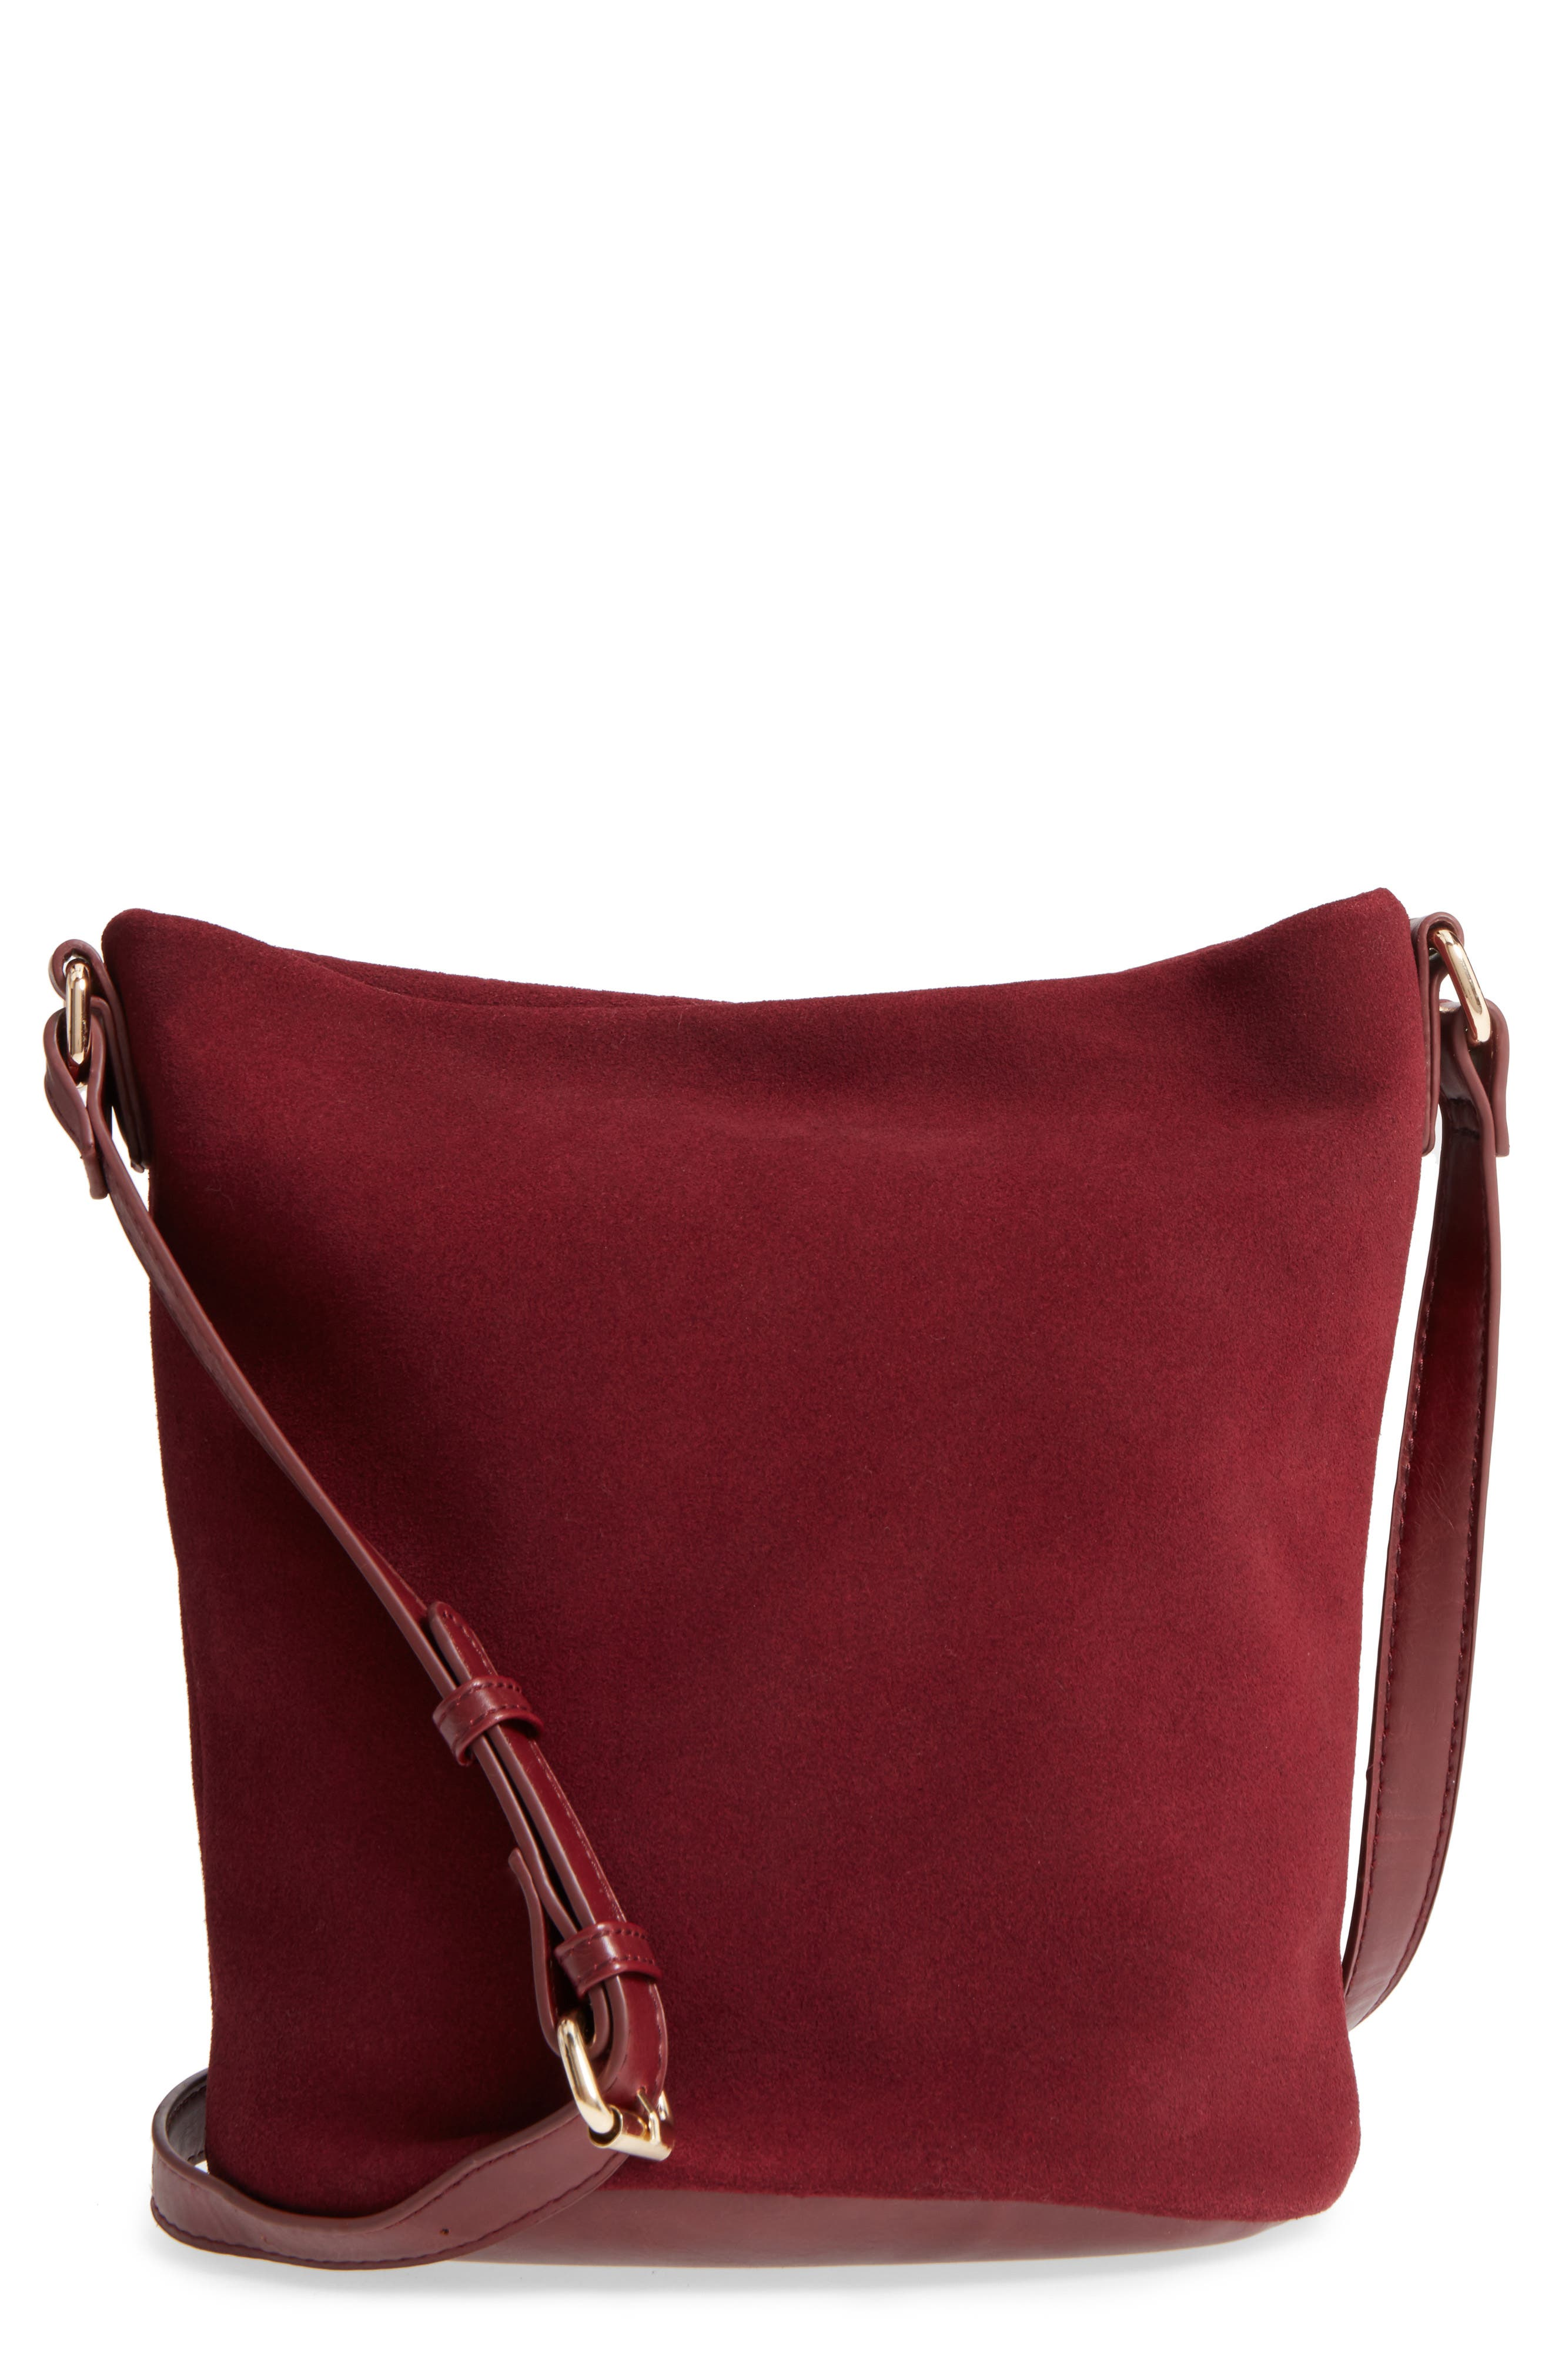 Alternate Image 1 Selected - Sole Society Lana Slouchy Suede Crossbody Bag